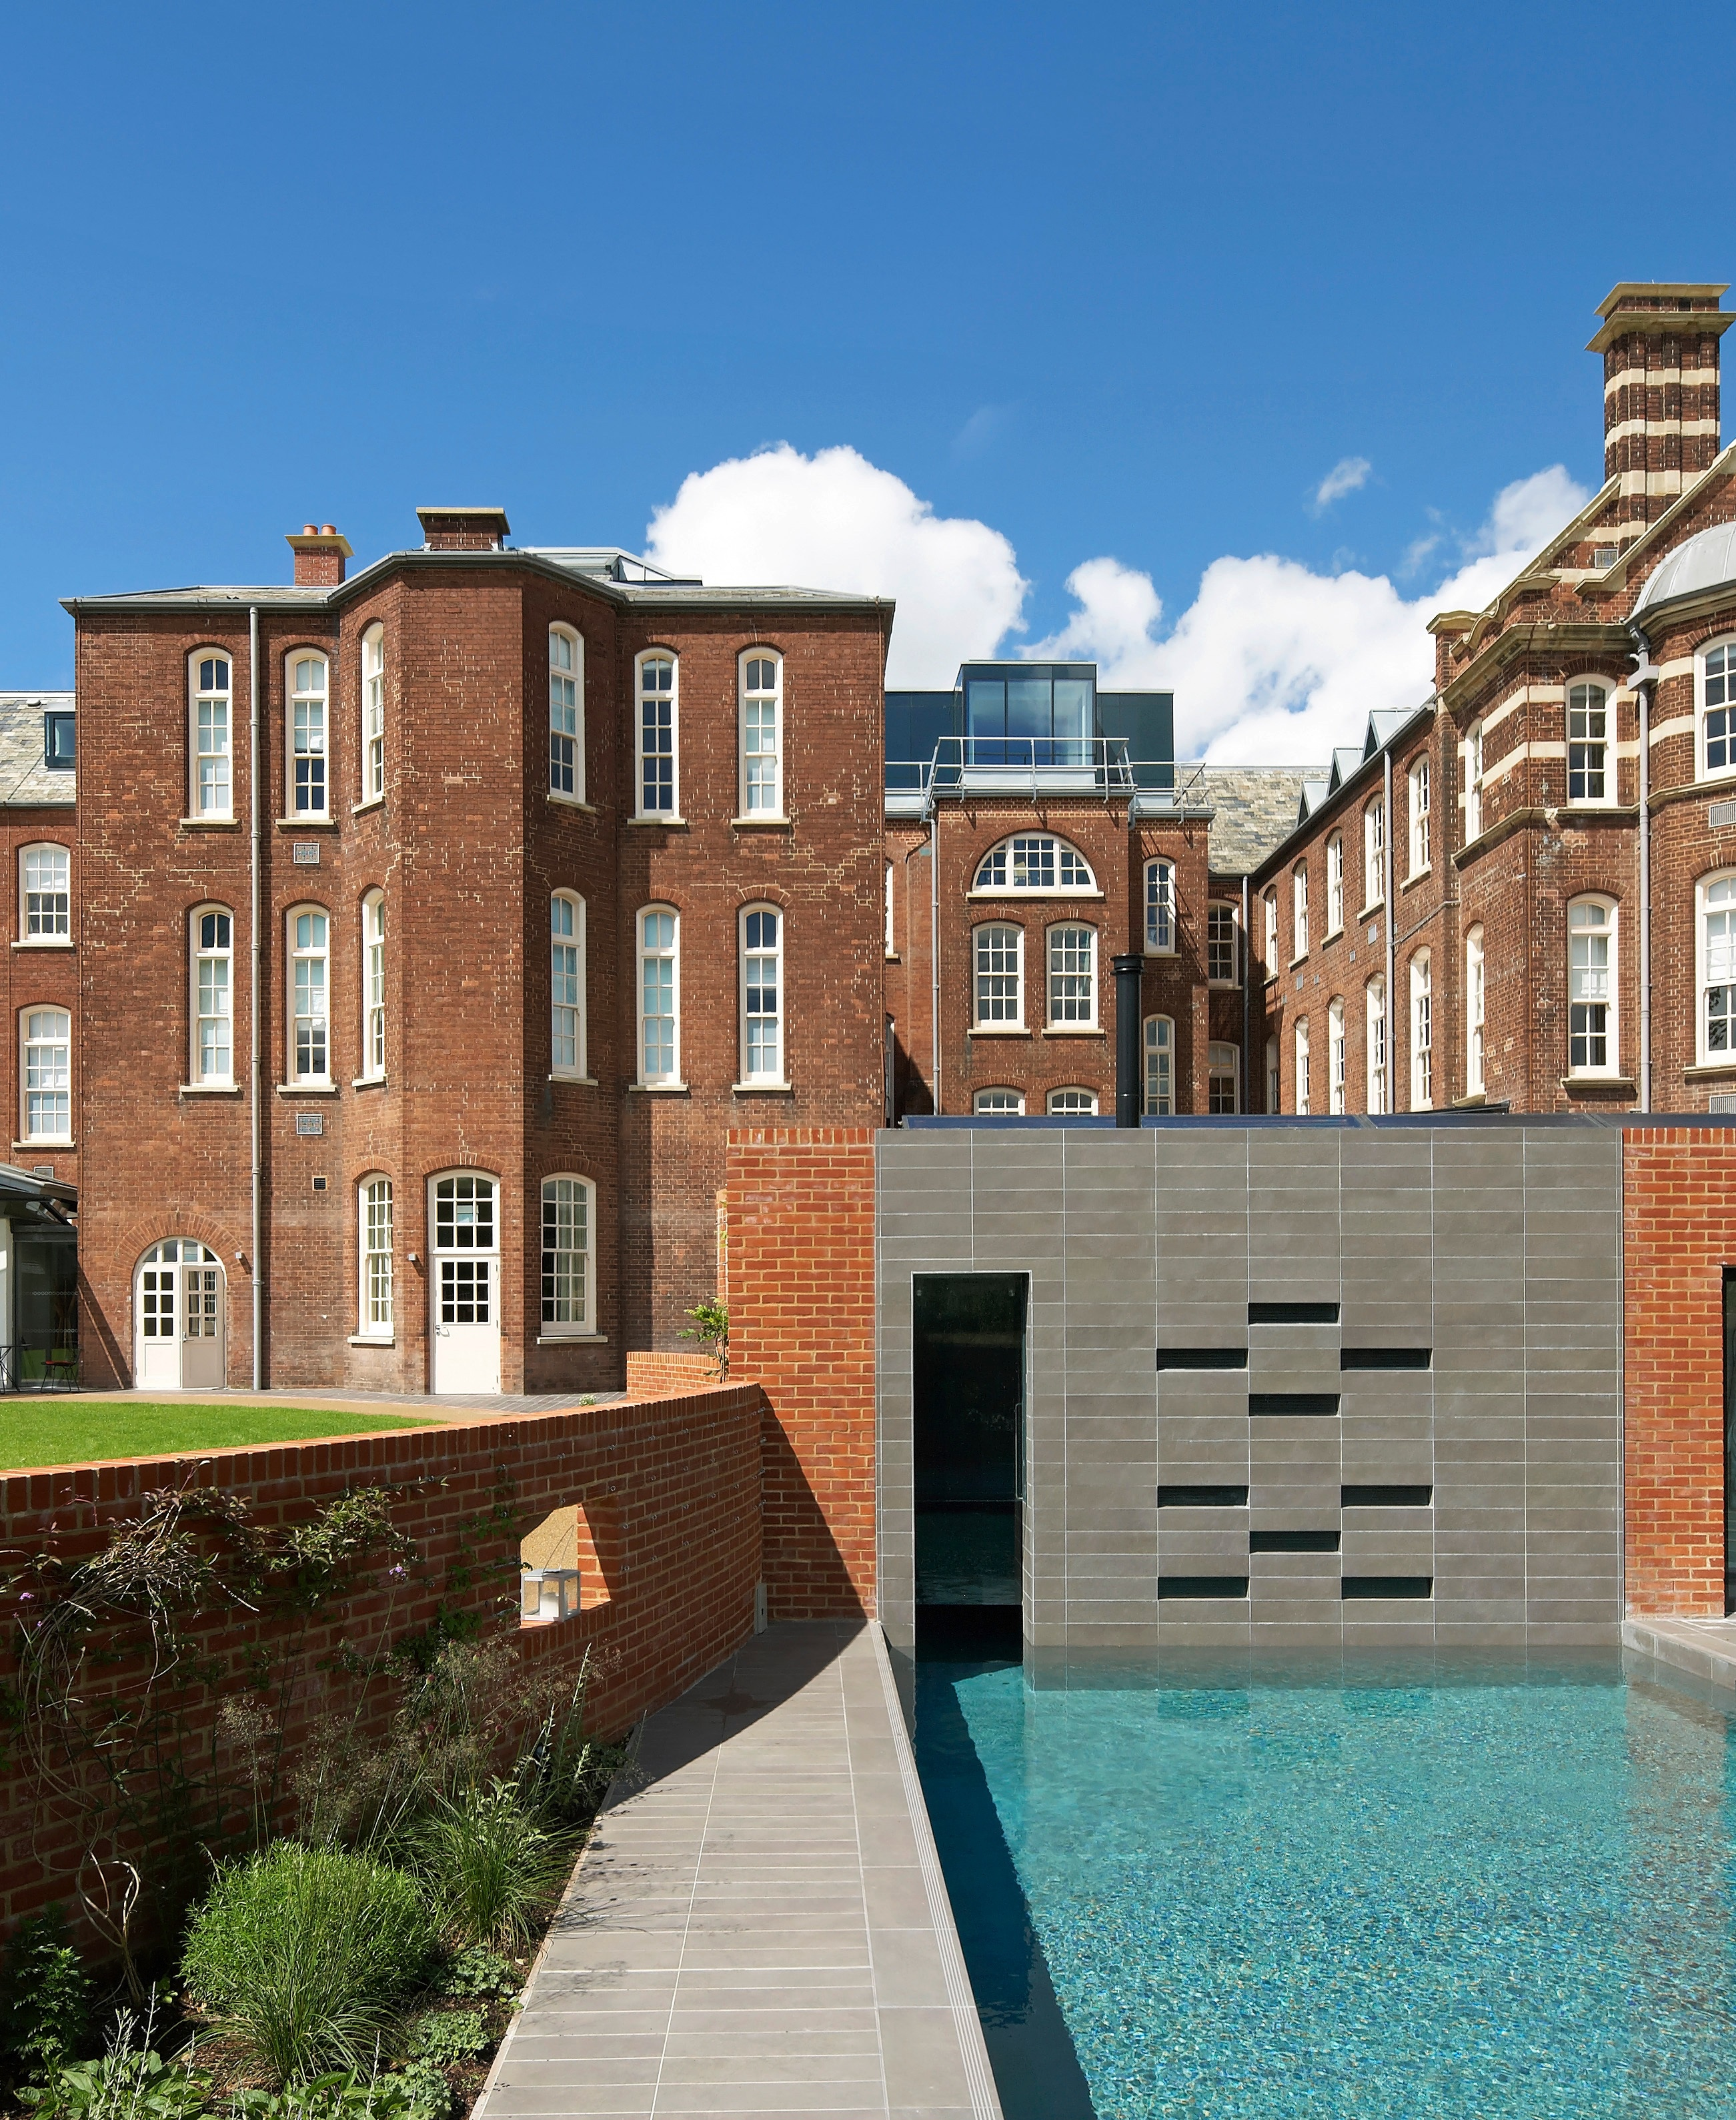 Hotel du Vin Exeter View from Pool & Spa